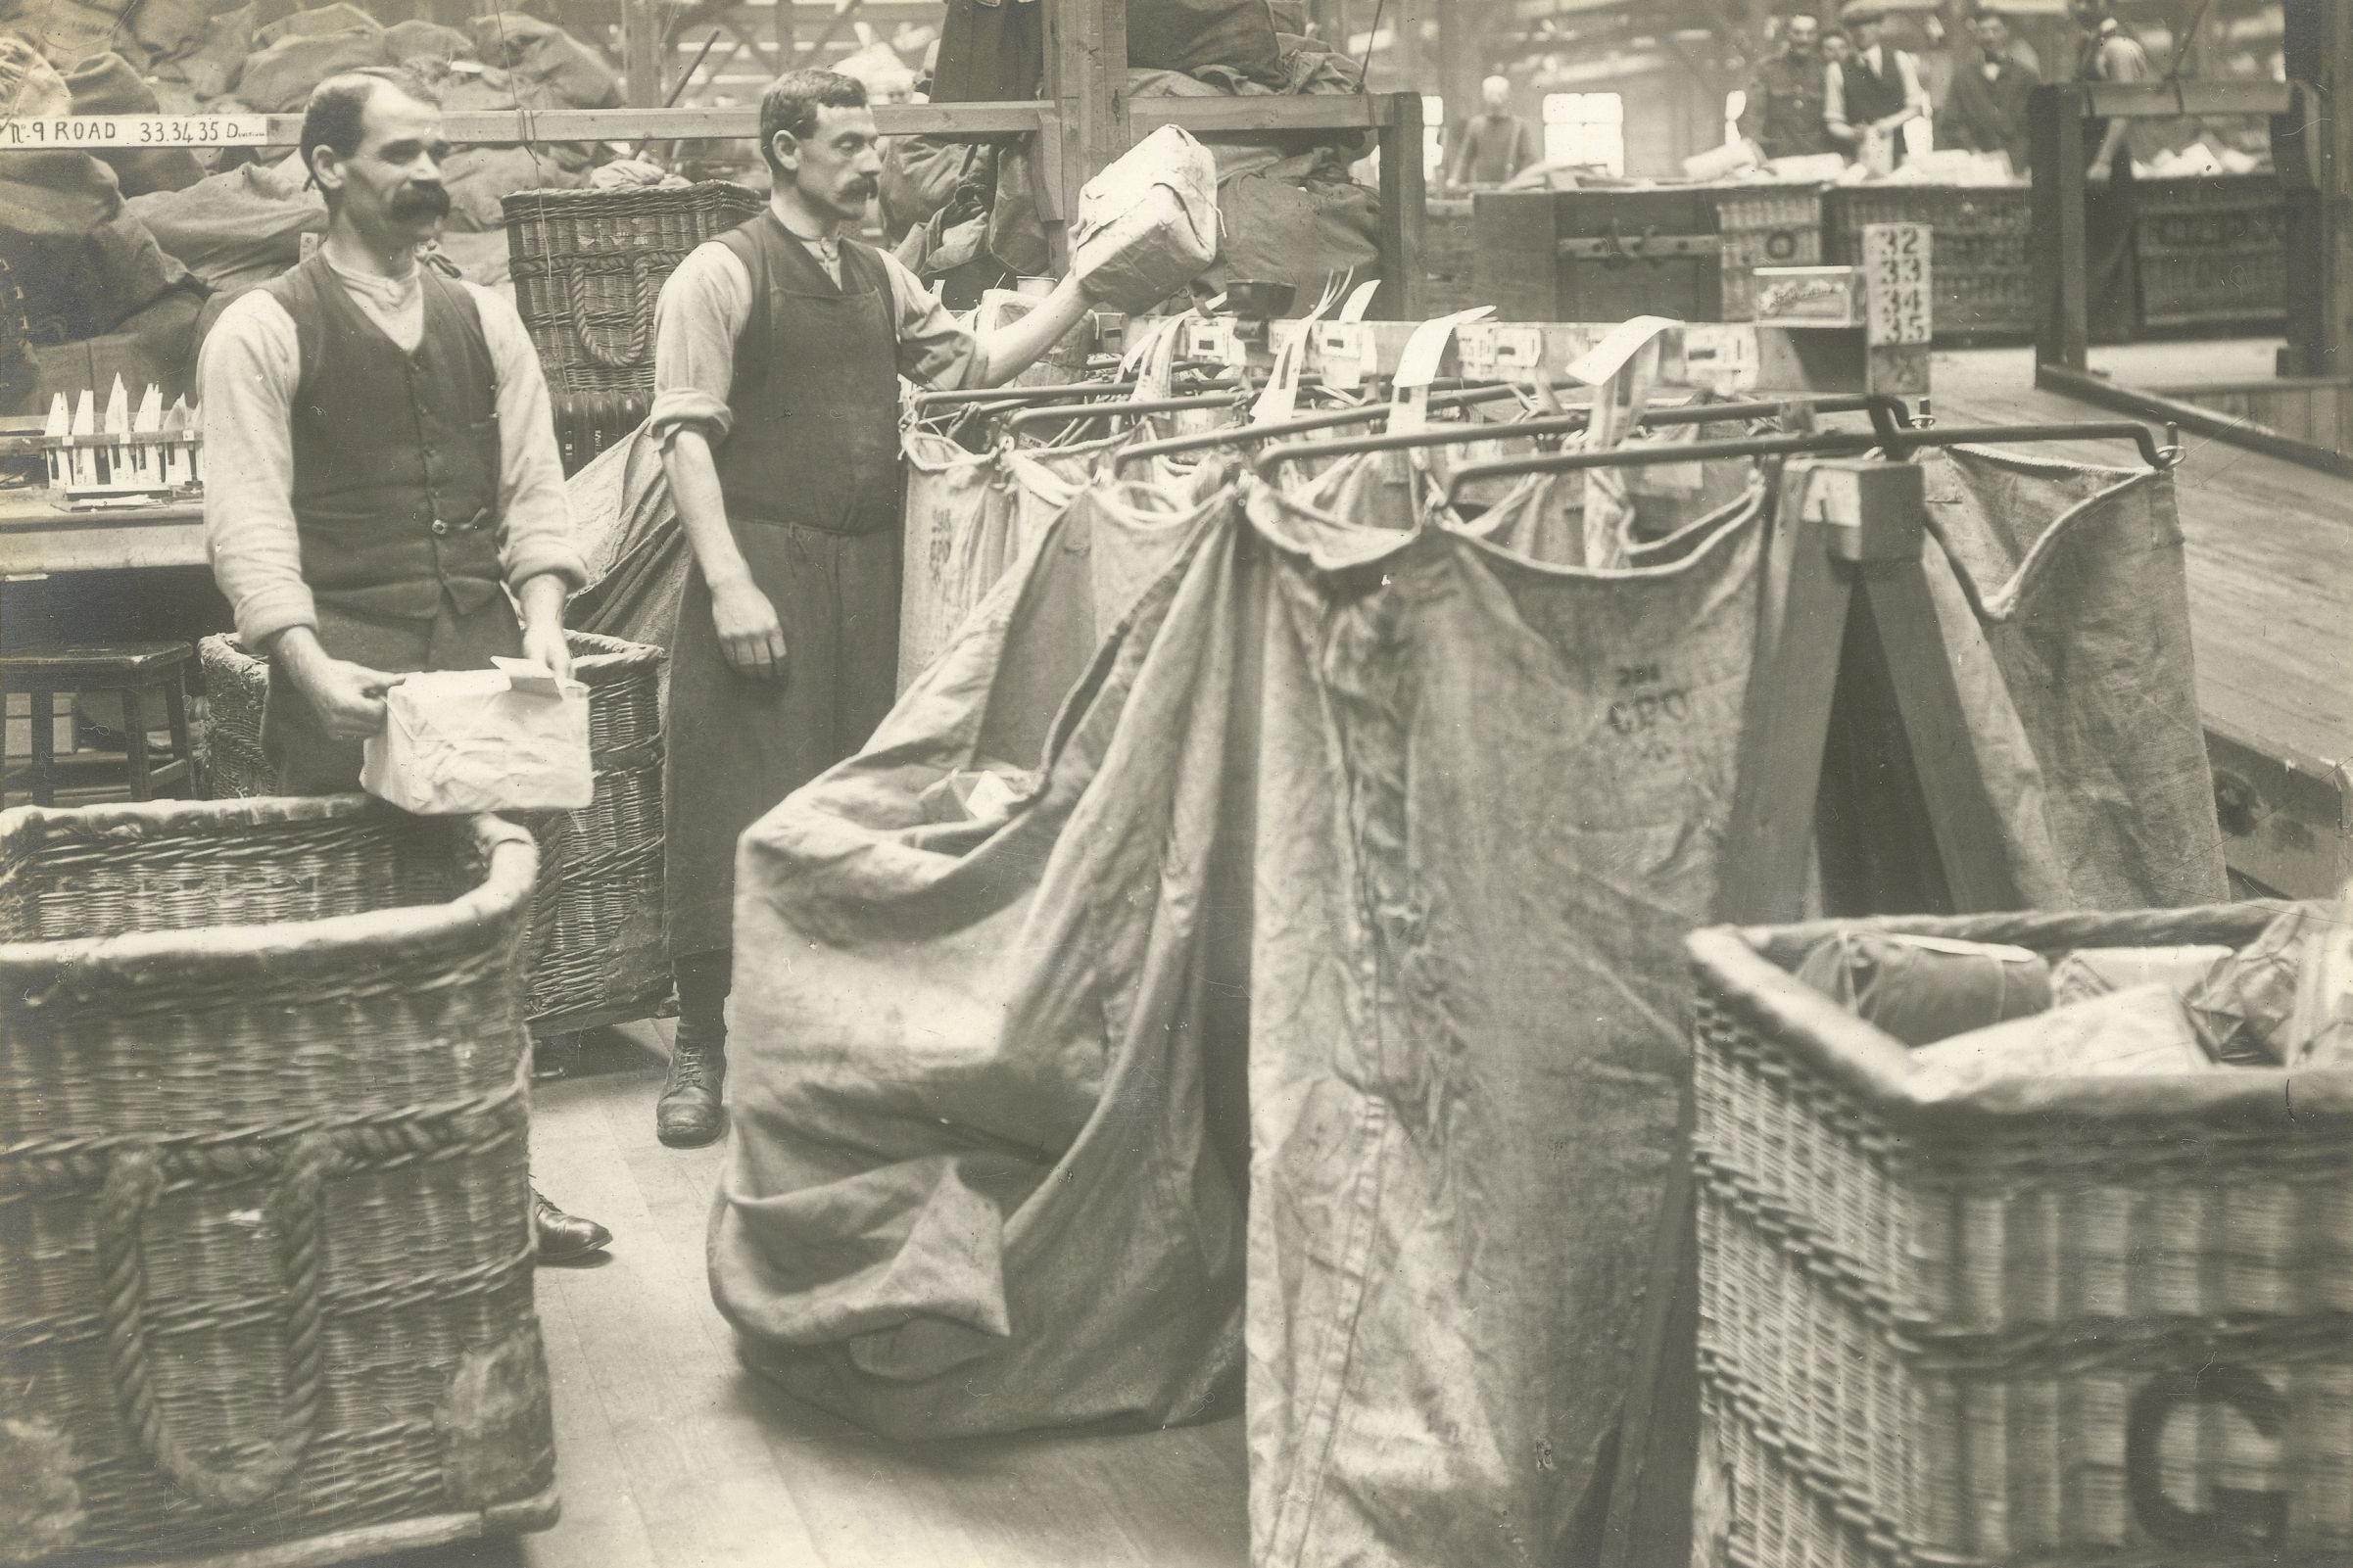 ww1-home-depot-sorting-office.jpg